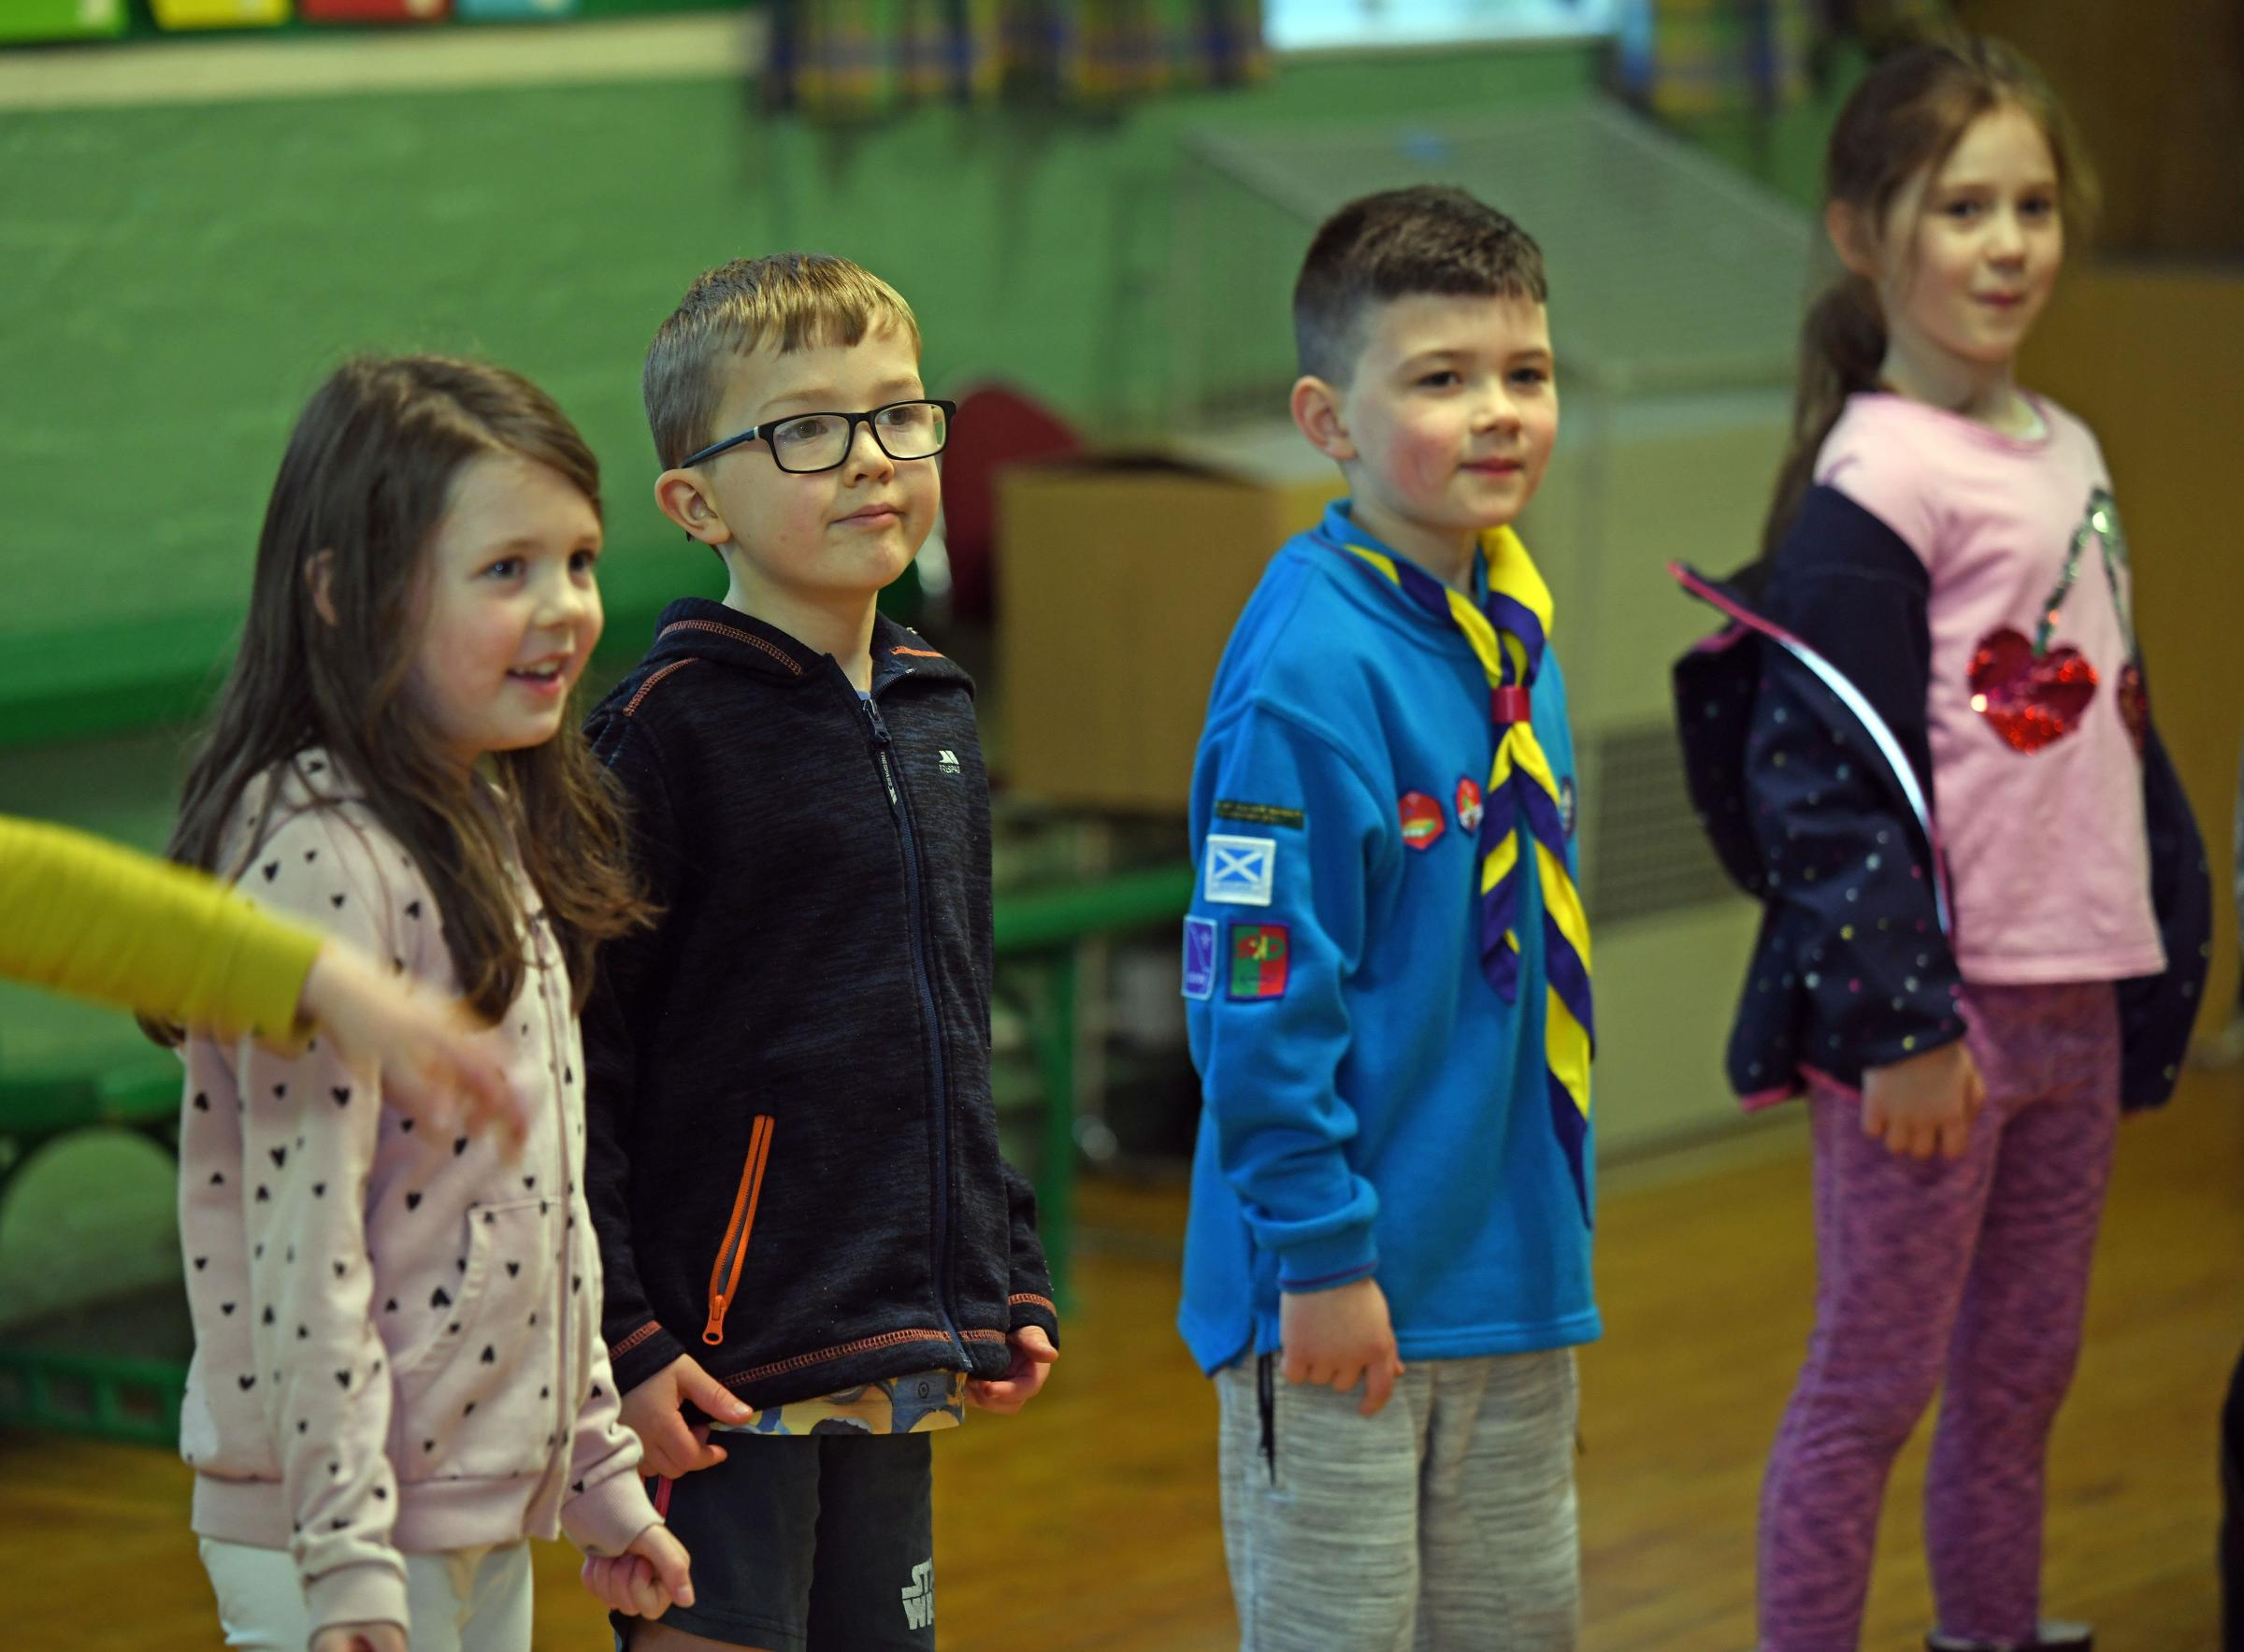 Glasgow South Western Scouts gear up for third annual Gang Show